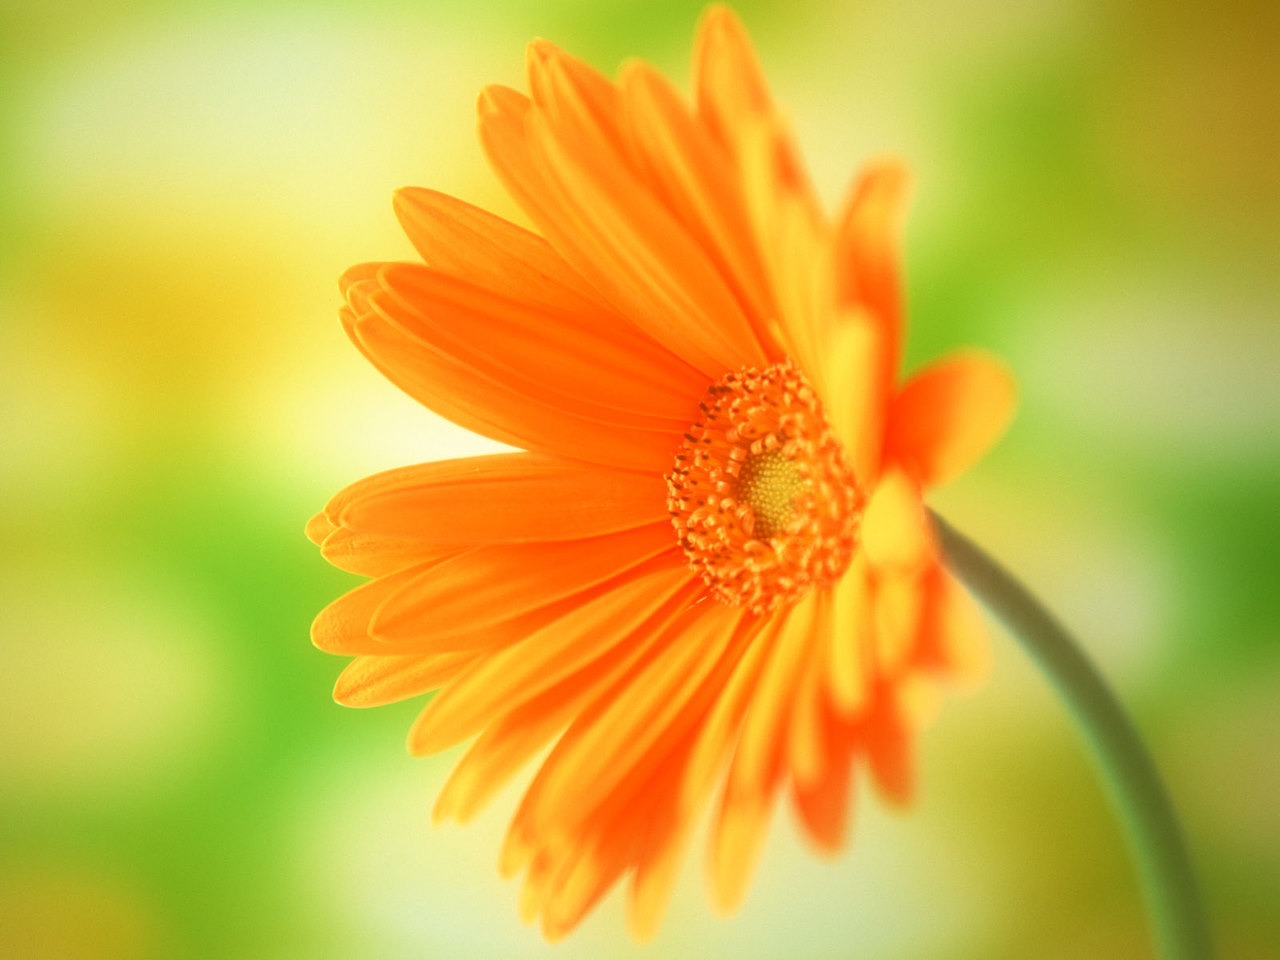 Free Computer Wallpaper Flowers Yellow Daisy Flower Desktop